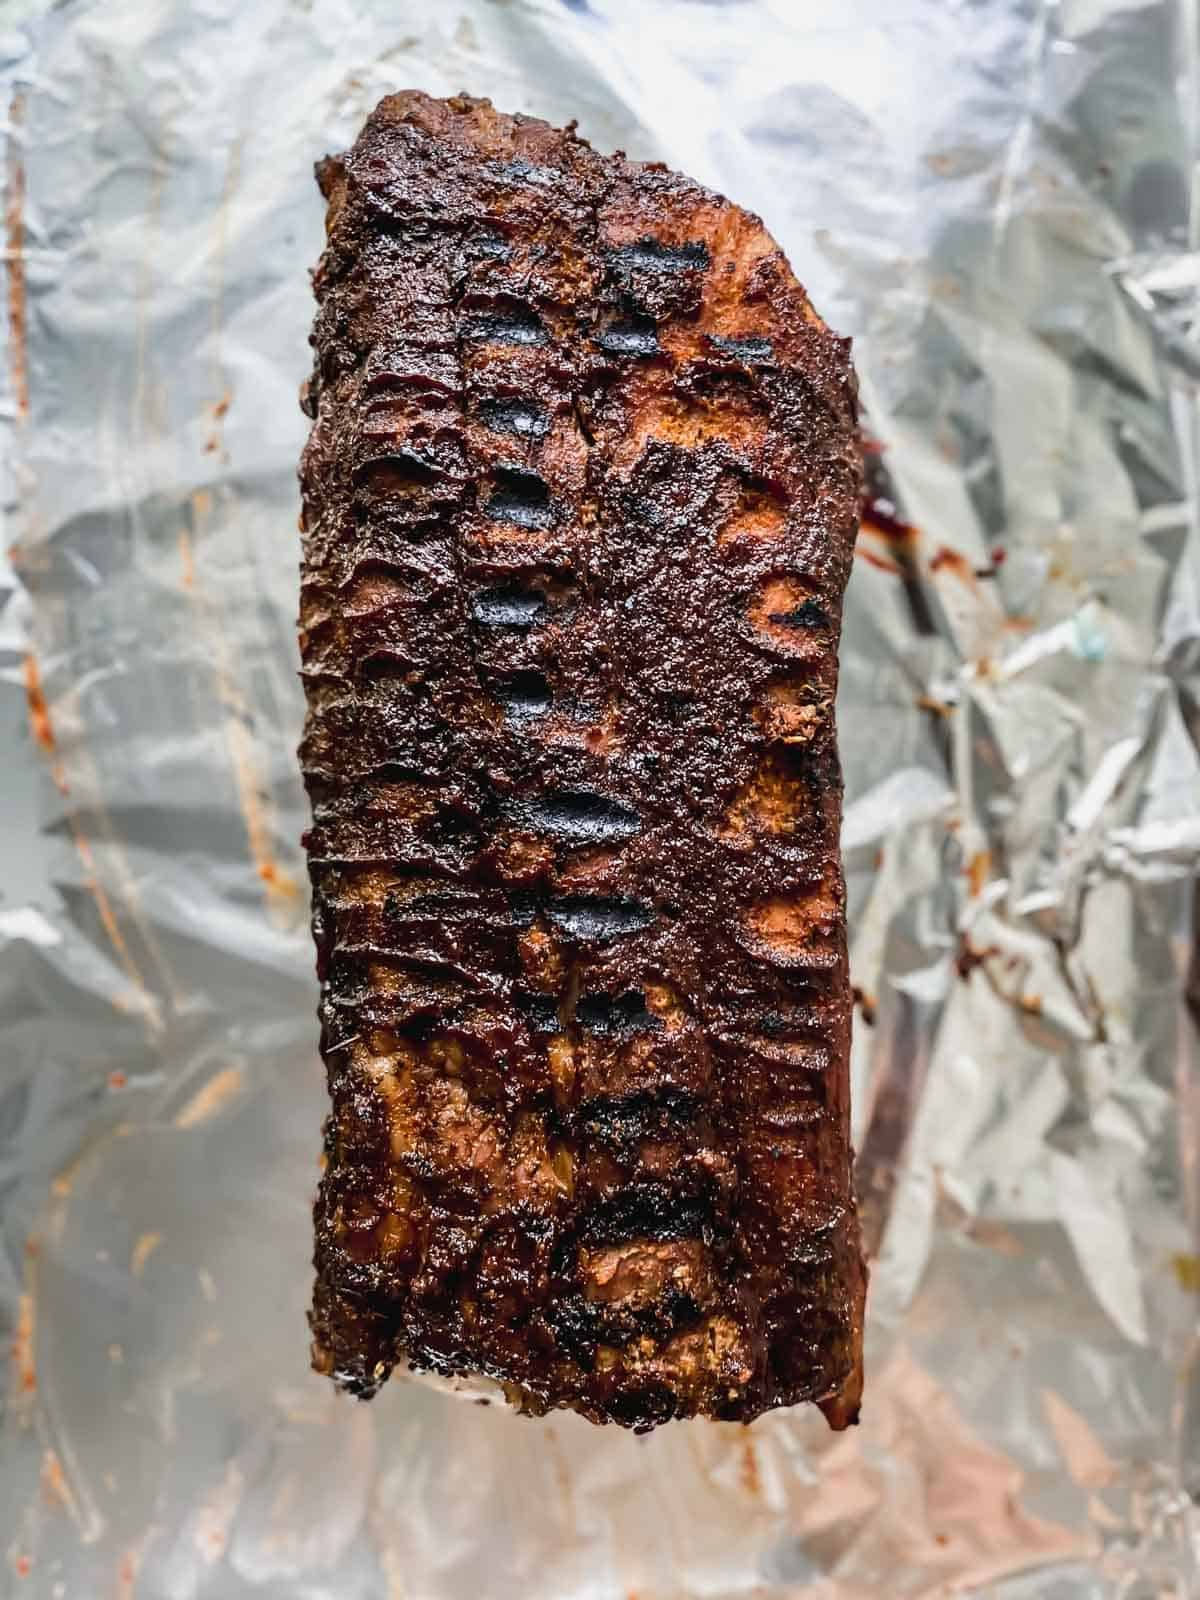 grilled slab of ribs on a sheet pan covered with aluminum foil